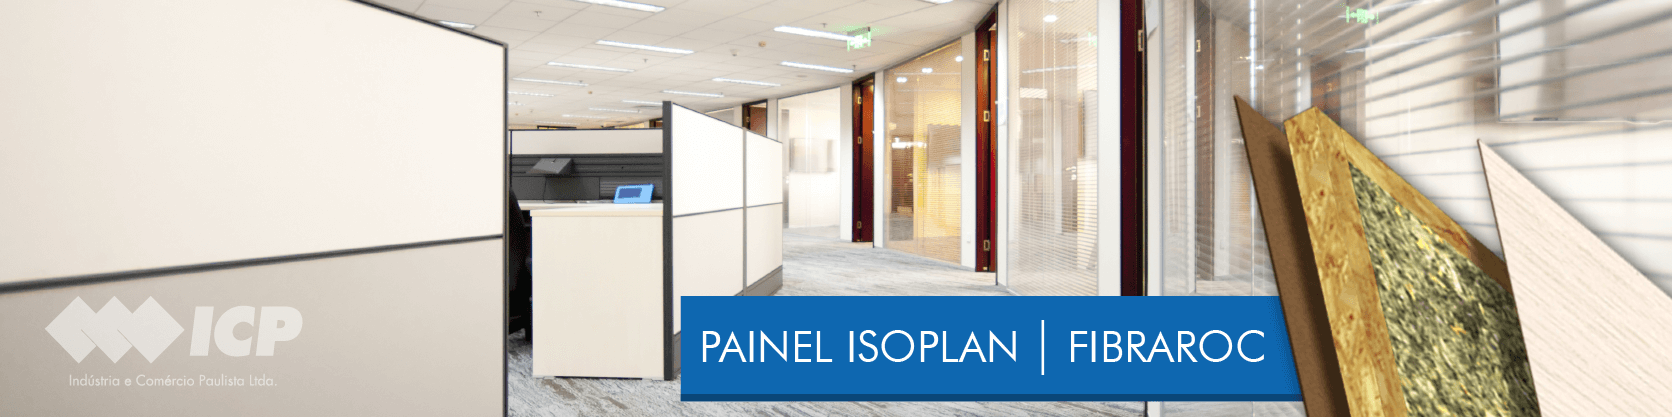 PAINEL ISOPLAN